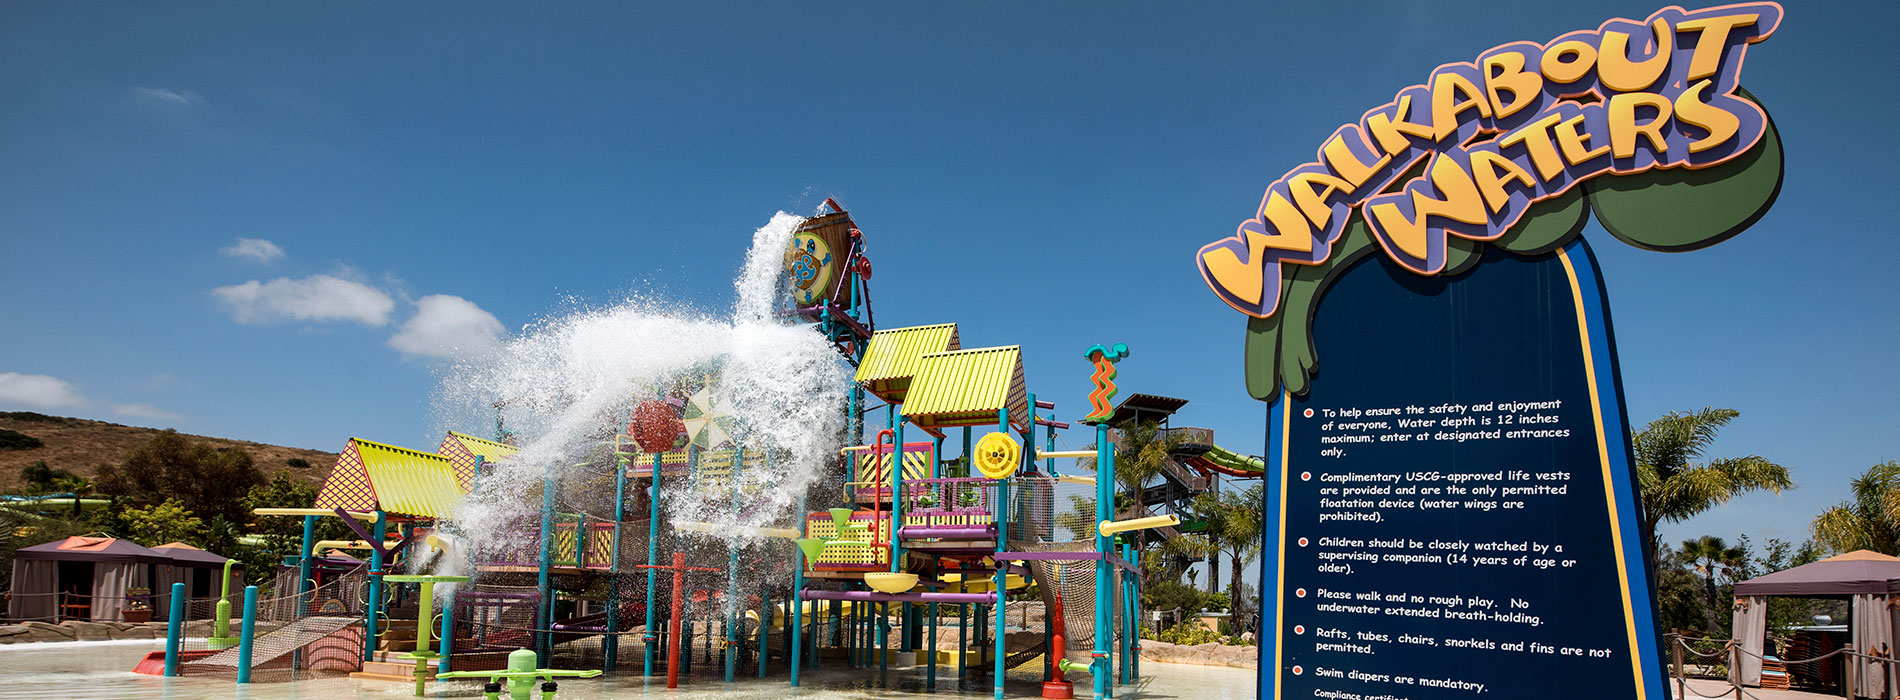 Walkabout Waters at Aquatica San Diego